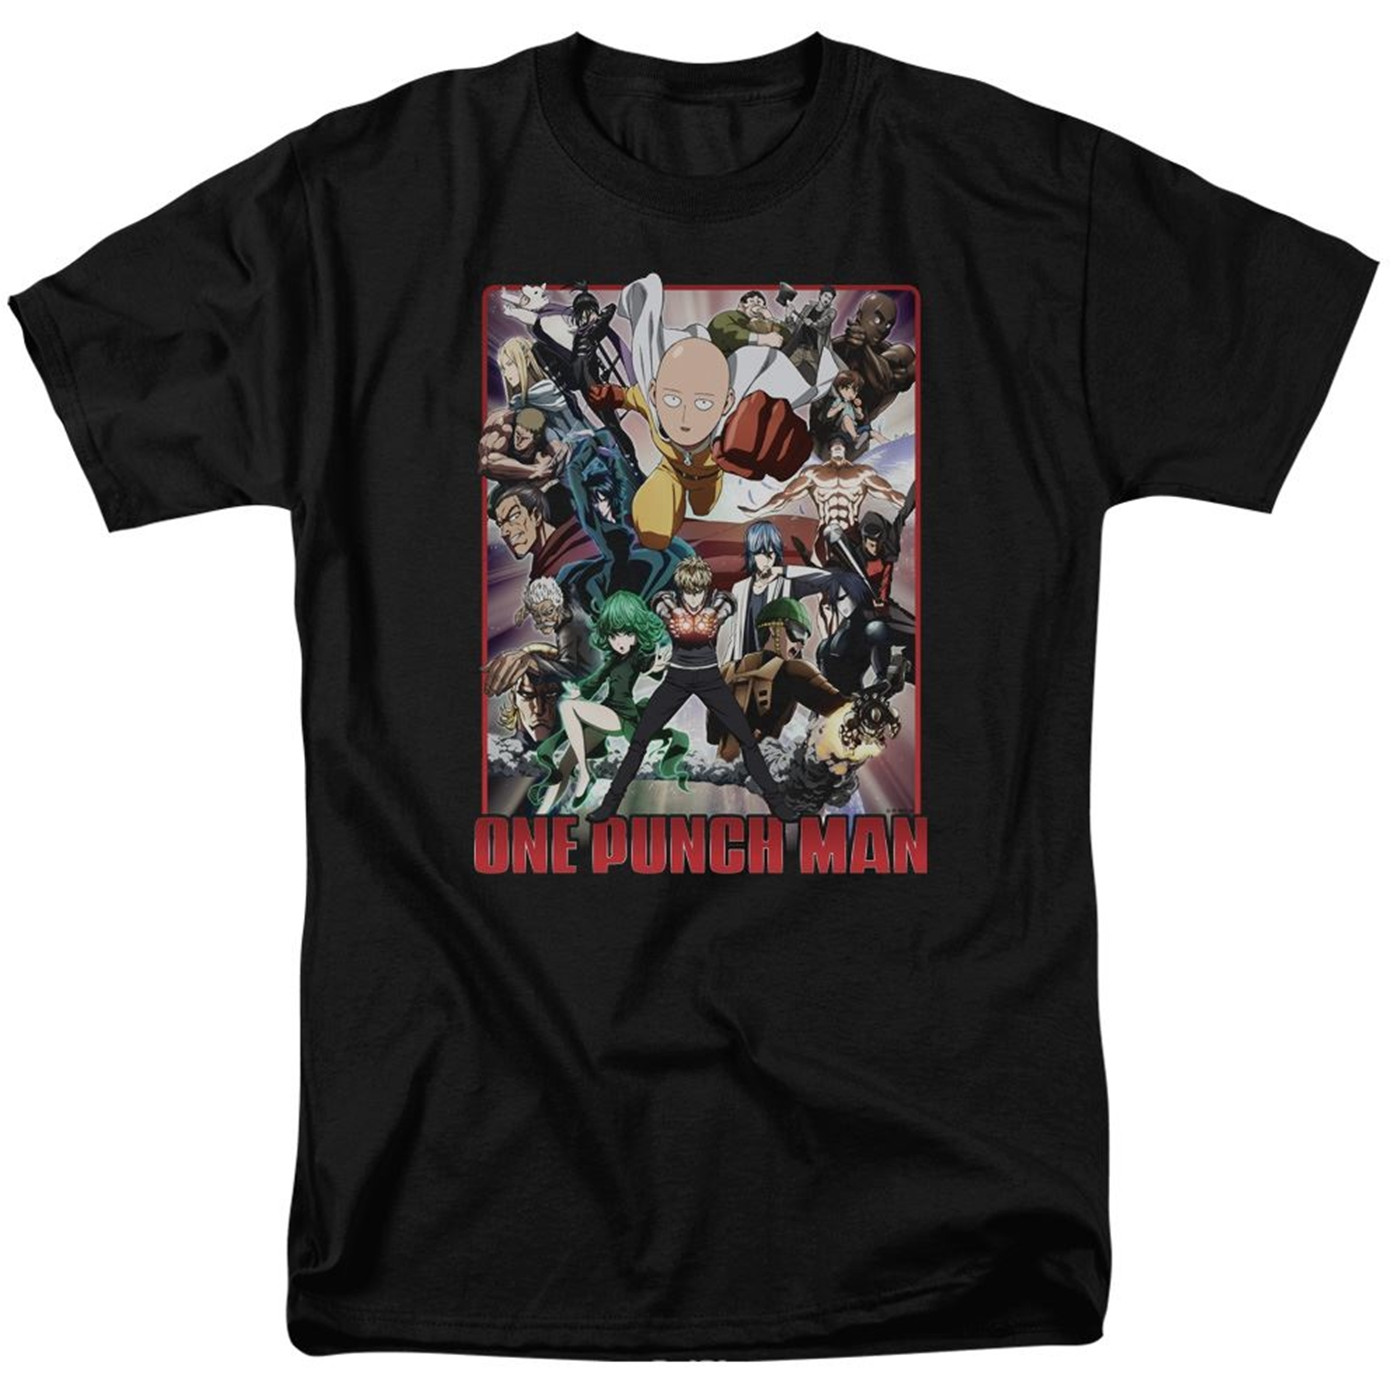 One Punch Man Cast of Characters Men's Black T-Shirt